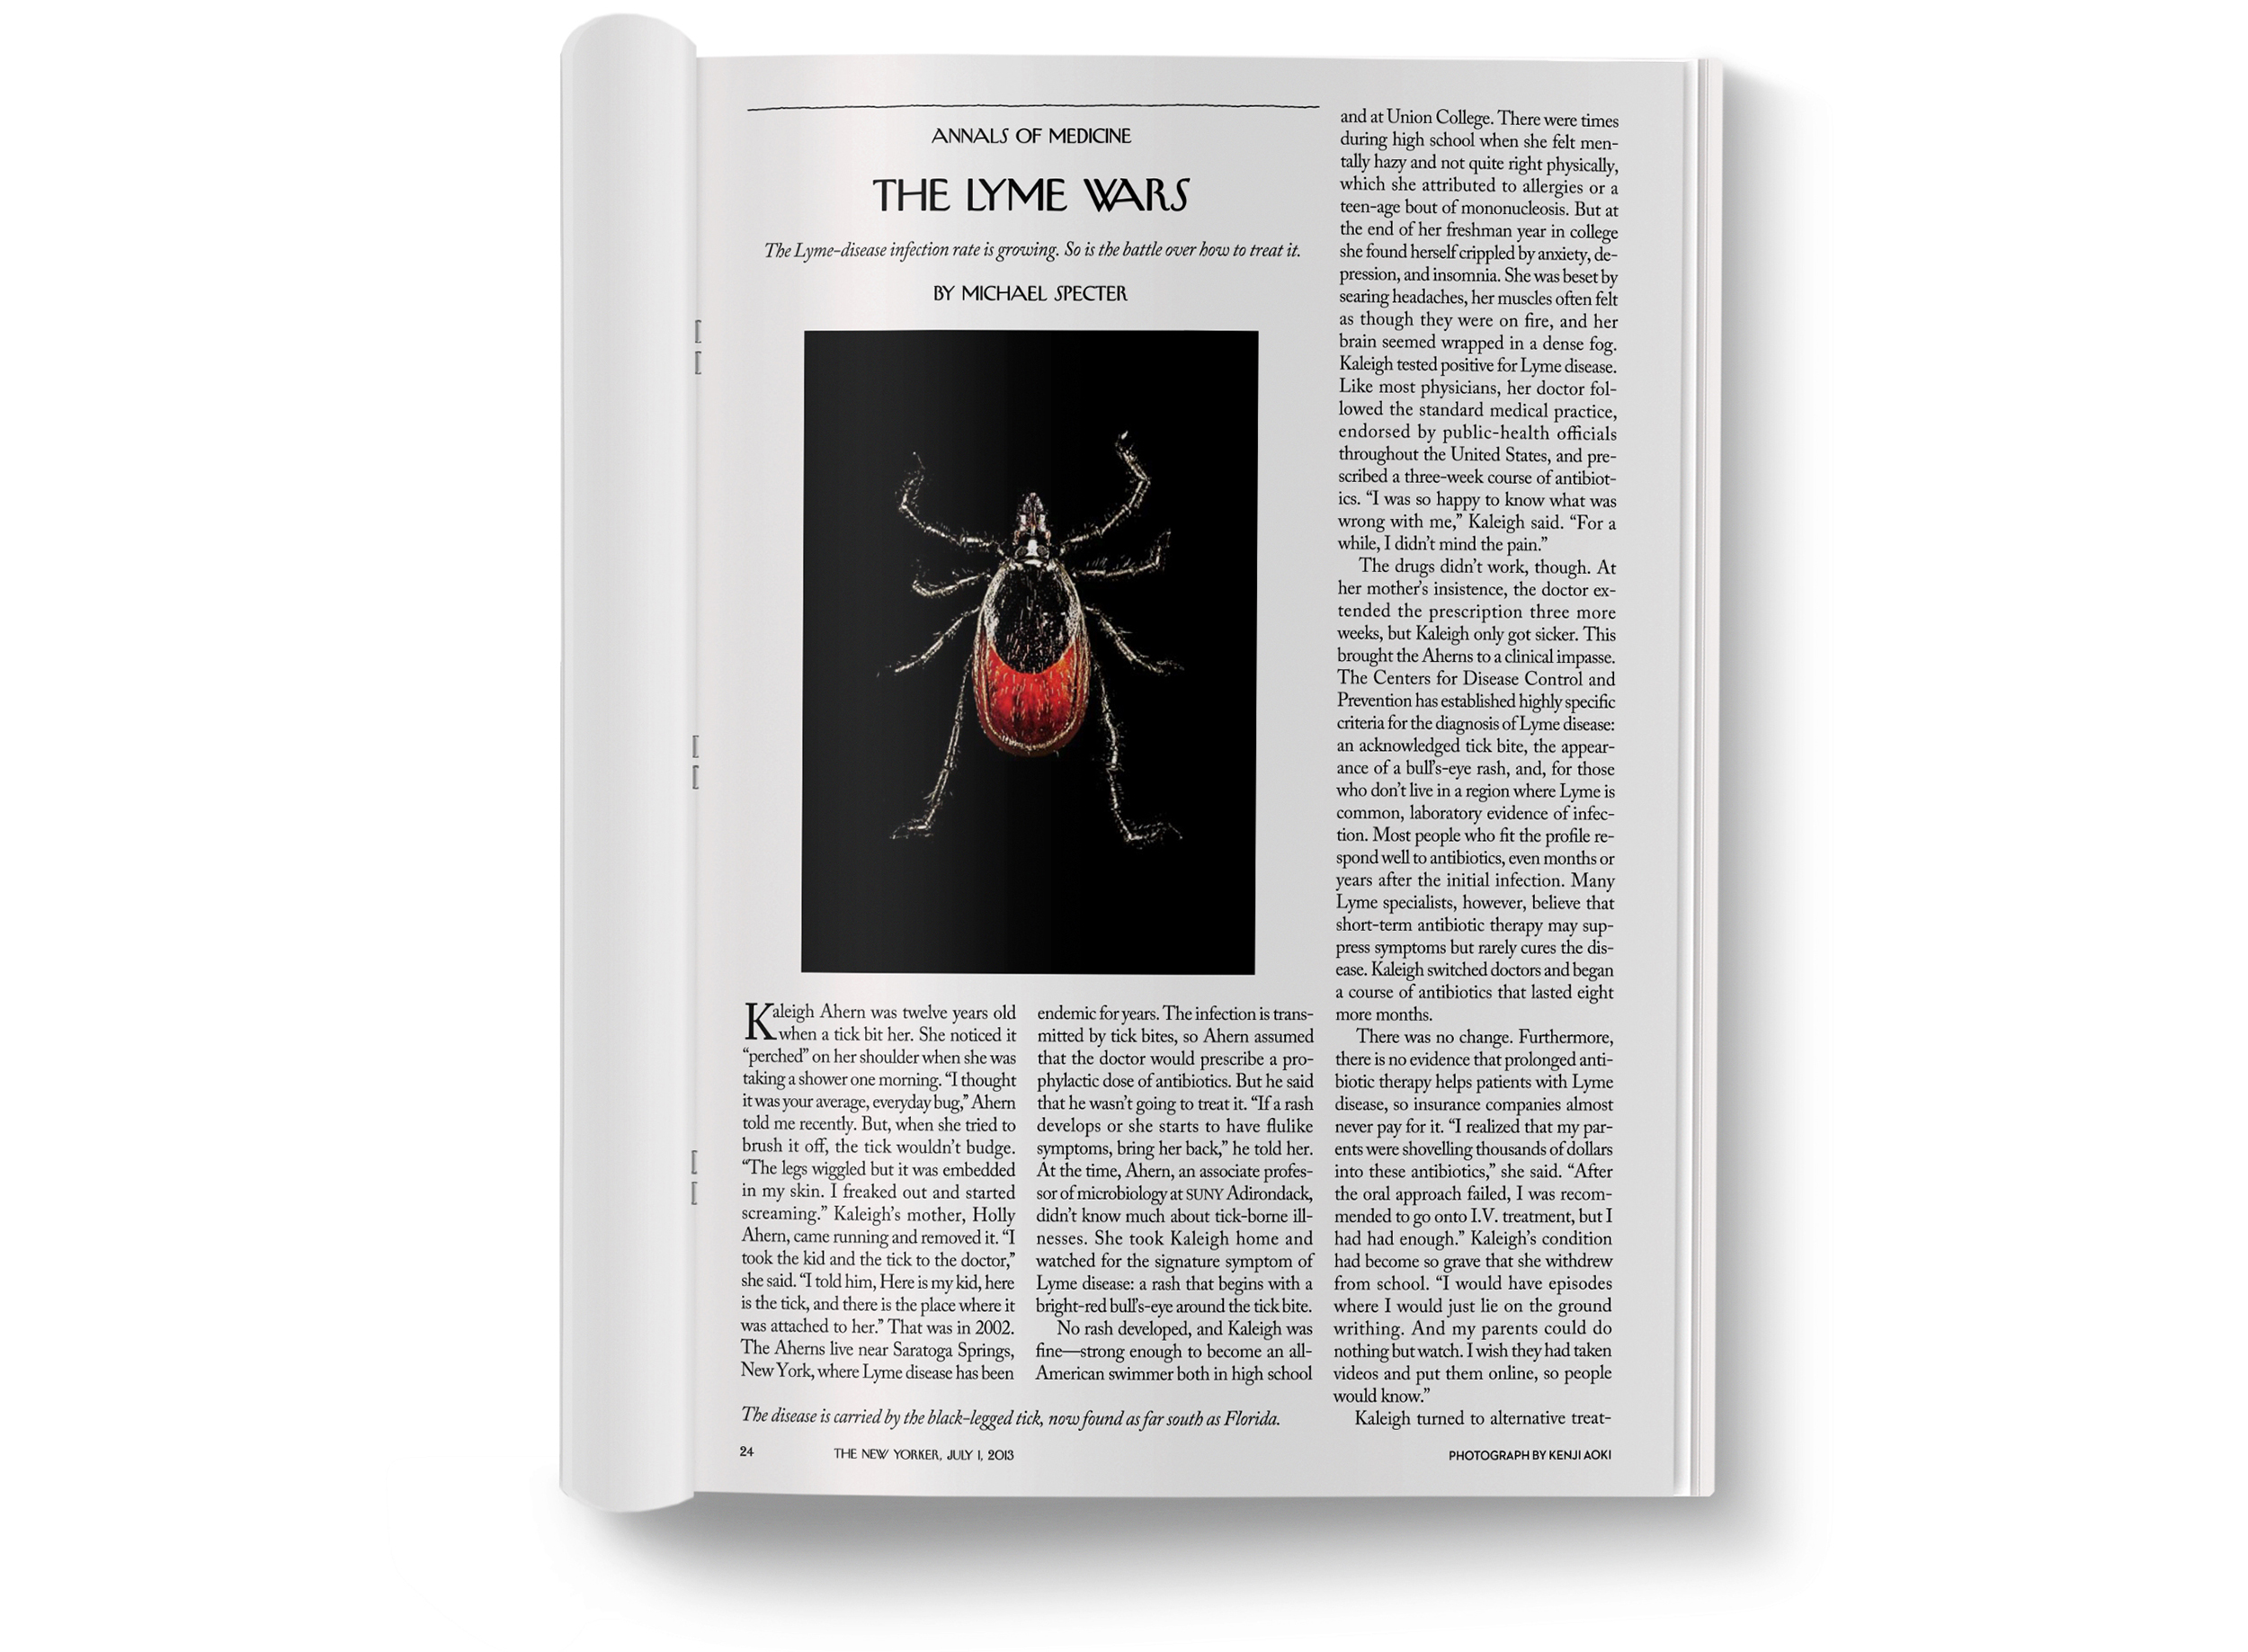 The Lyme Wars  photographed by  Kenji Aoki .